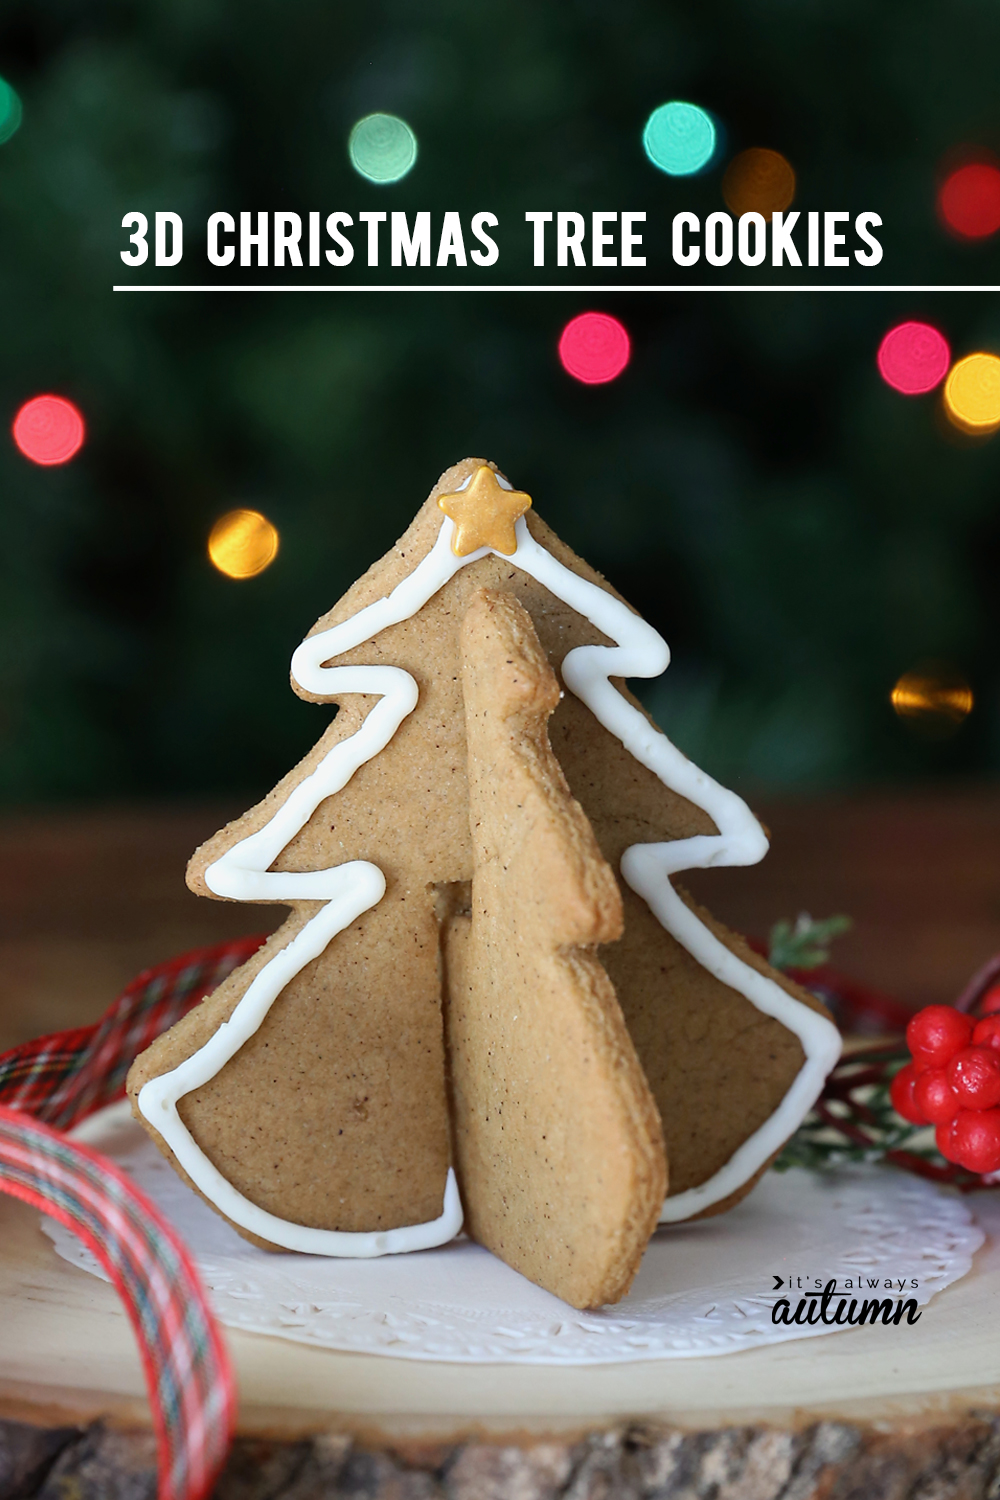 3D Christmas tree gingerbread cookie